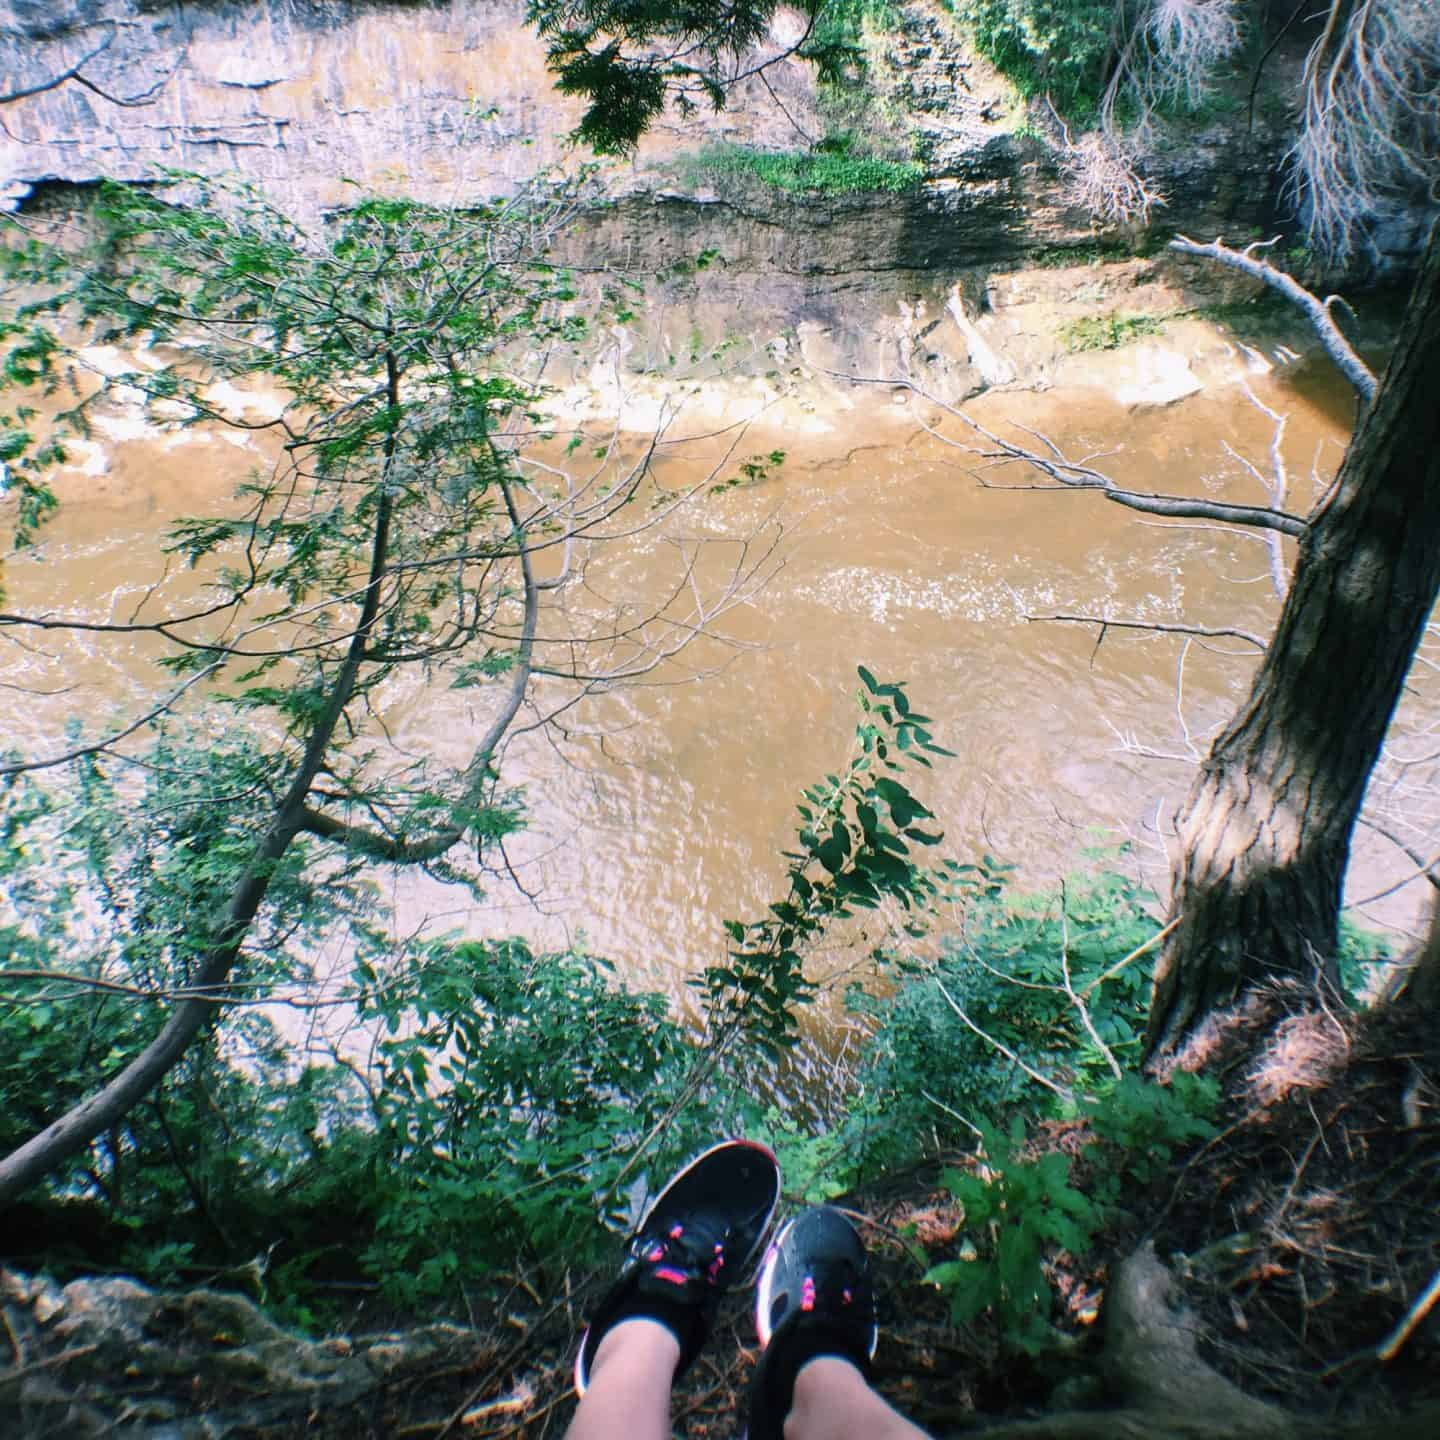 Hiking in the Elora Gorge Conservation Area in Elora, Ontario